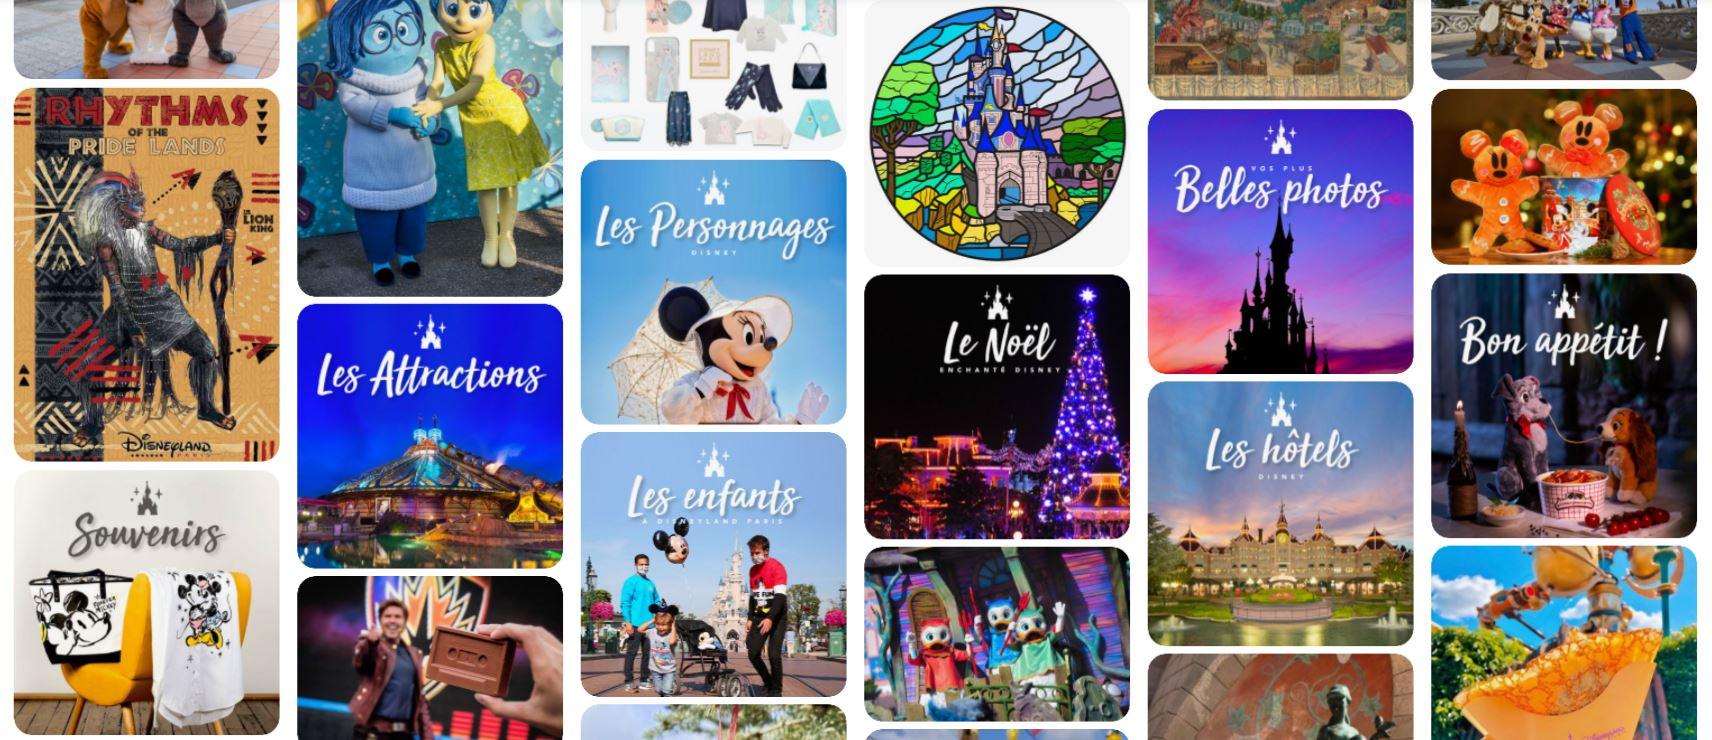 Disneyland Paris est maintenant sur Pinterest